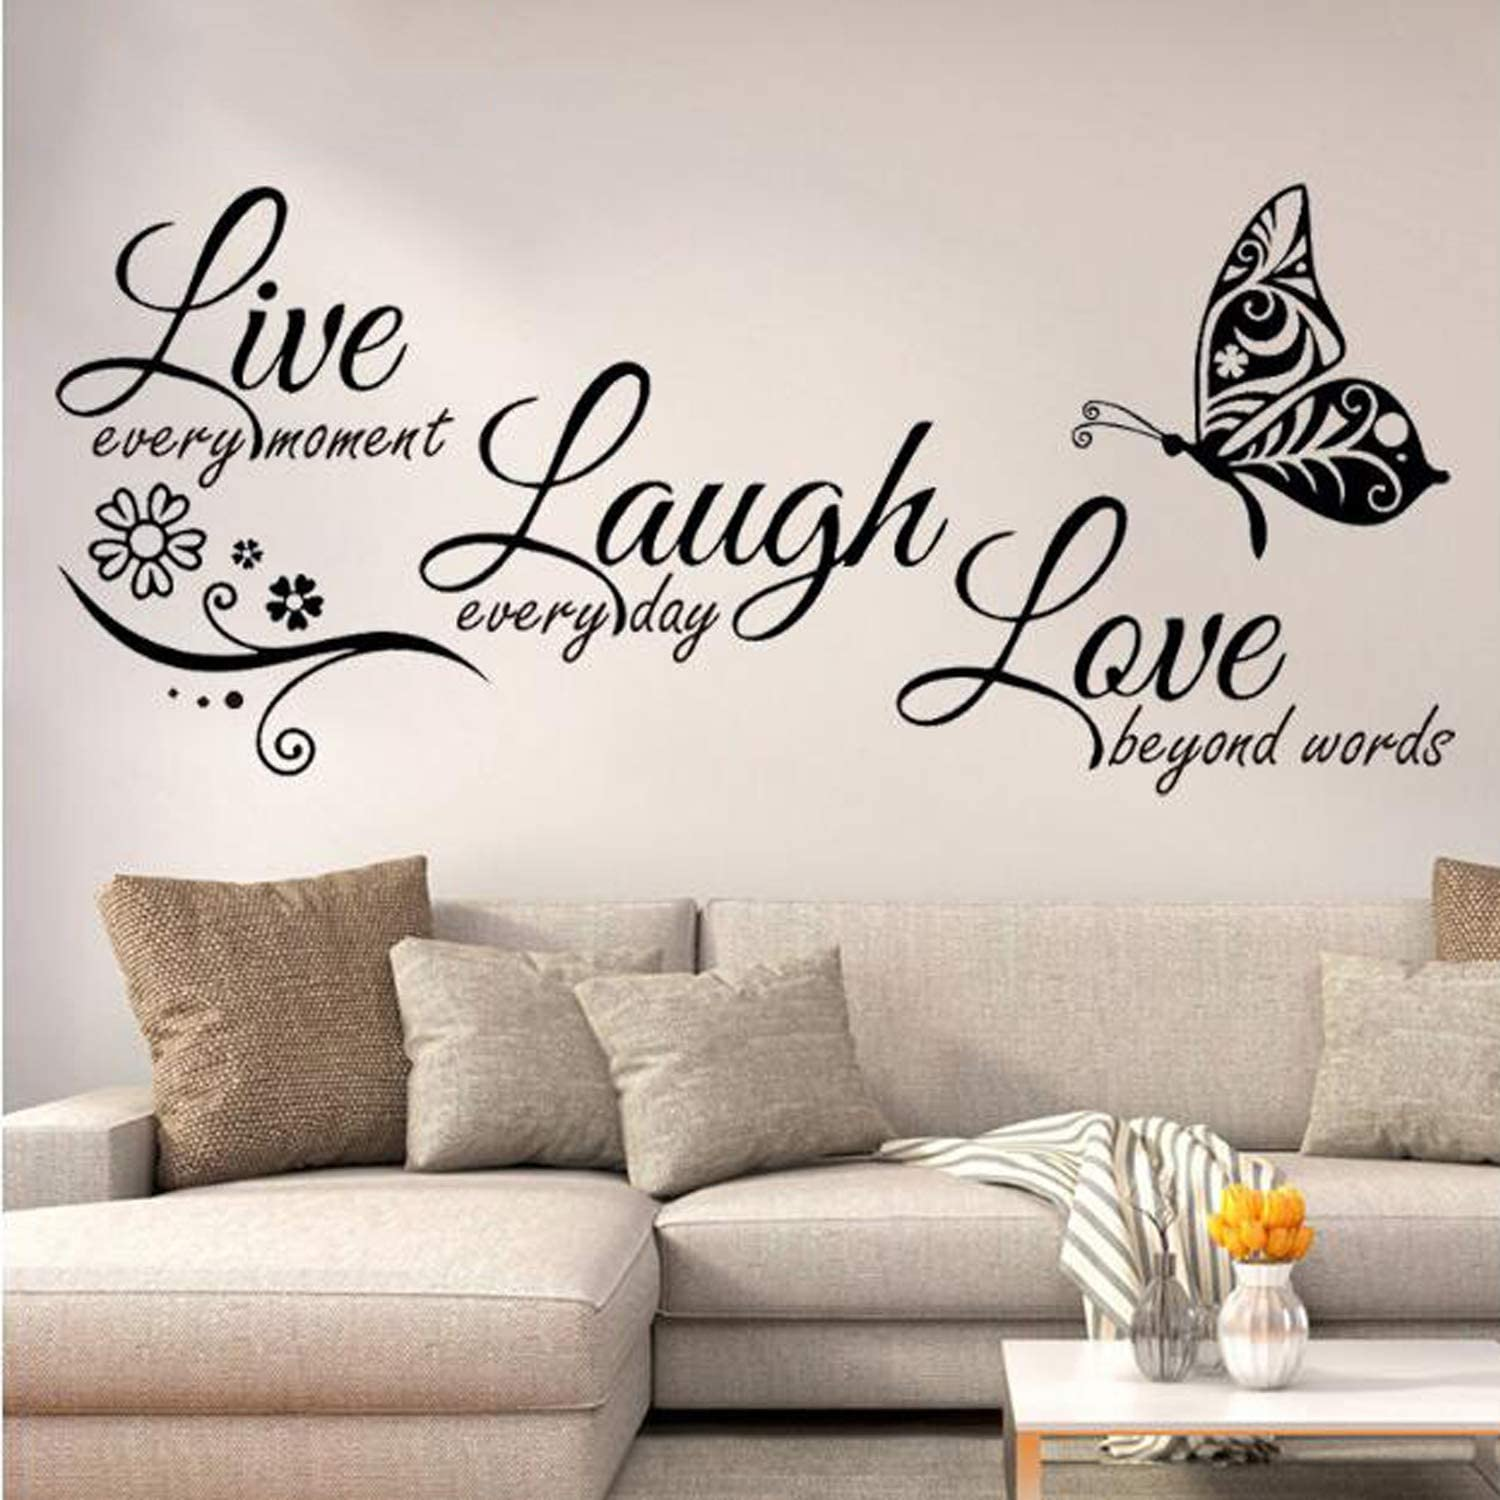 YINASI Inspirational Quotes Wall Decal, Removable Vinyl Art Decoration for  Home Living Room Bedroom Nursery Room Classroom Wall Decor- Live Every